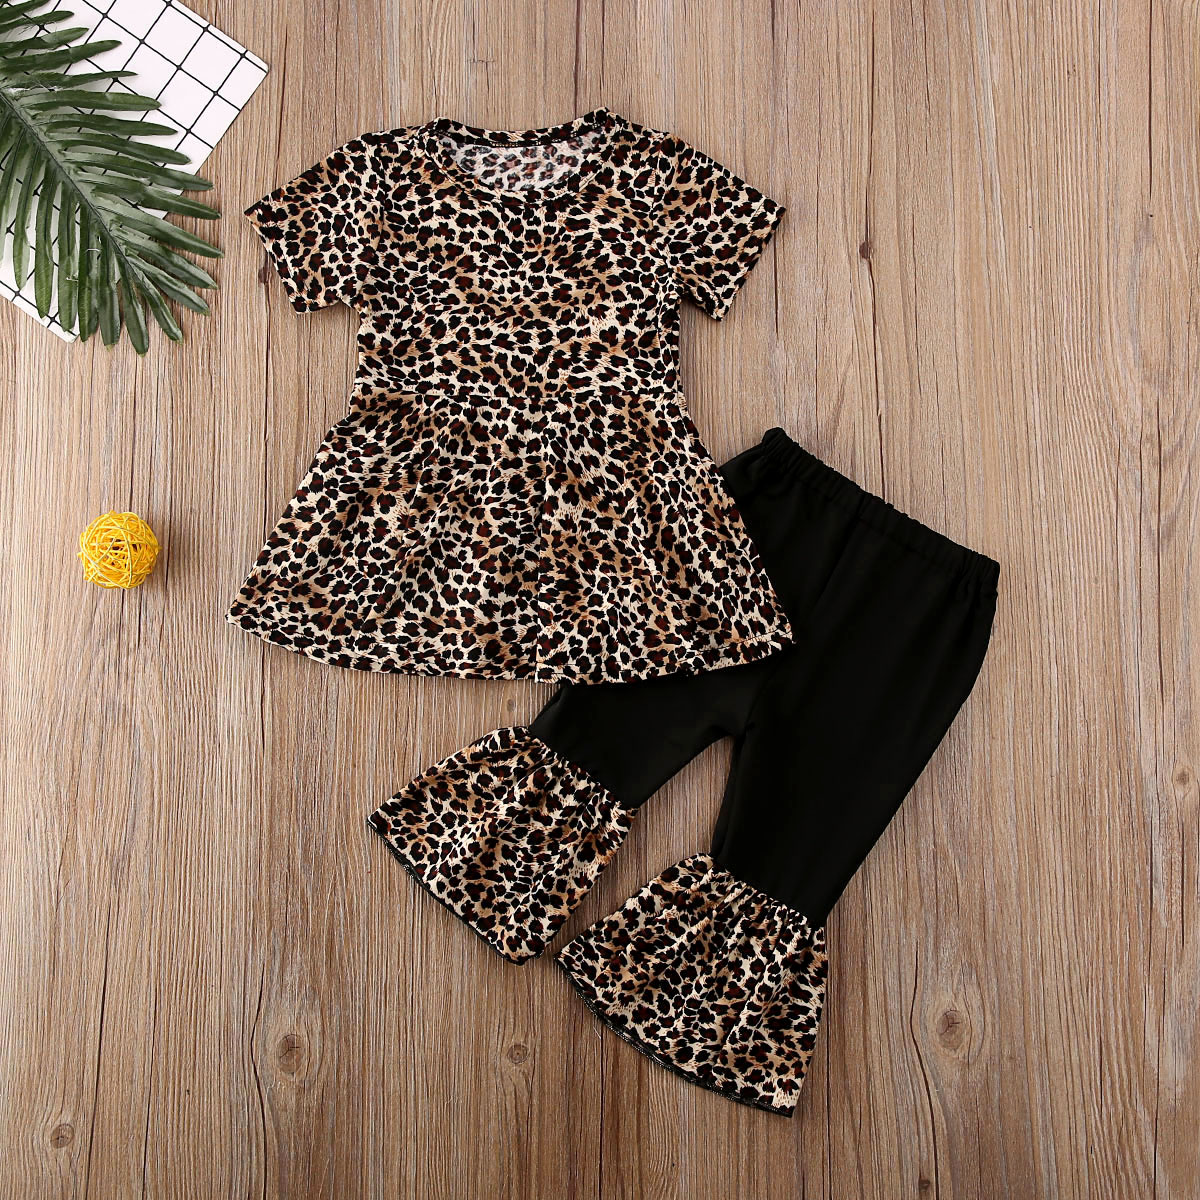 Pudcoco Newborn Baby Girl Clothes Leopard Print Short Sleeve Ruffle Dress Tops Bell-Bottoms Pants 2Pcs Outfits Cotton Clothes